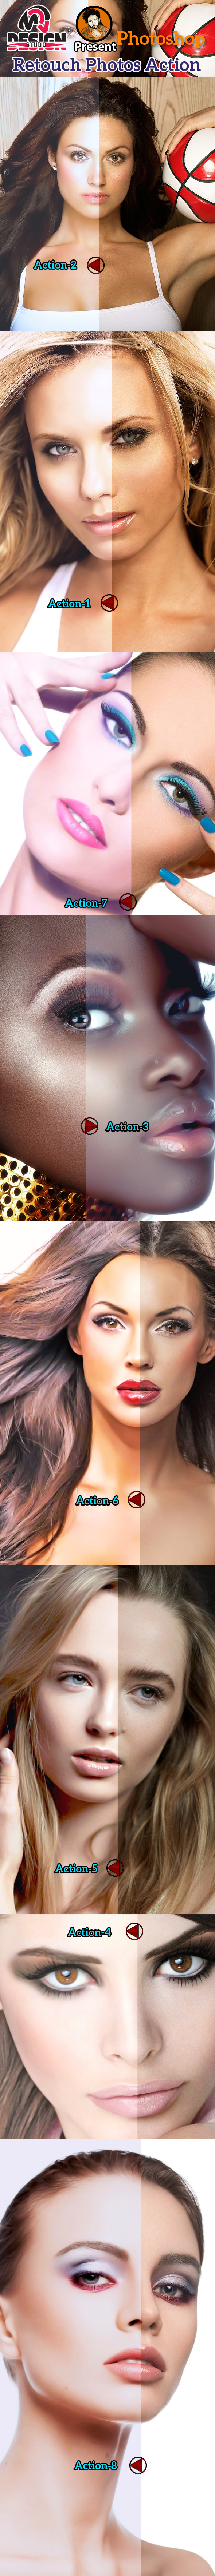 Retouch Photos Action - Photo Effects Actions